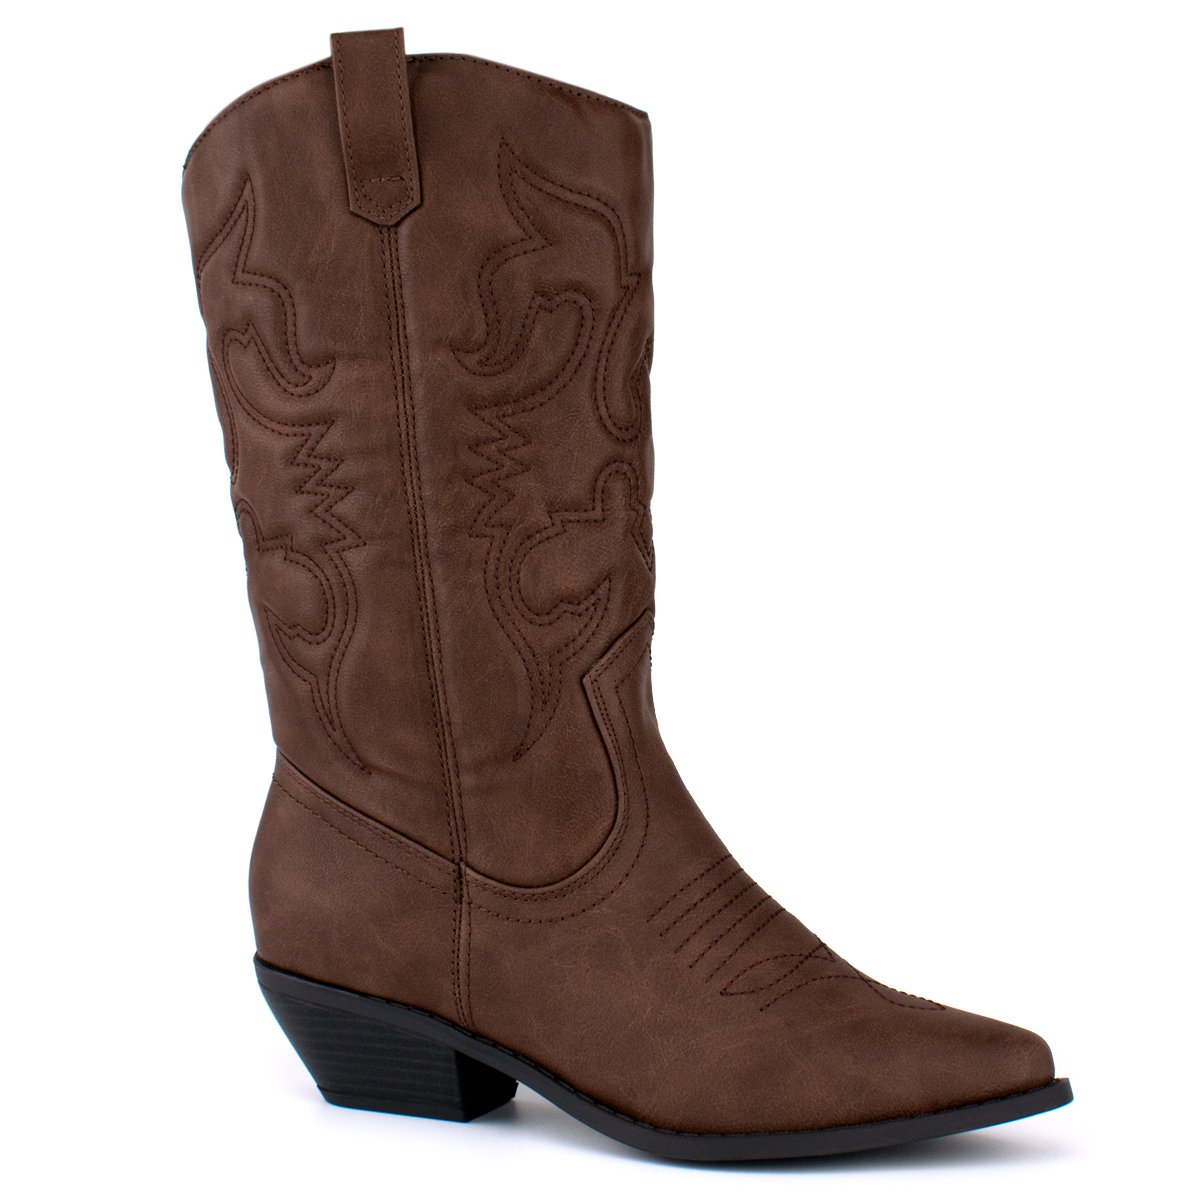 Premier Standard - Western Cowboy Pointed Toe Knee High Pull On Tabs Boots, TPS Boots-Oner Dk. Tan Size 7